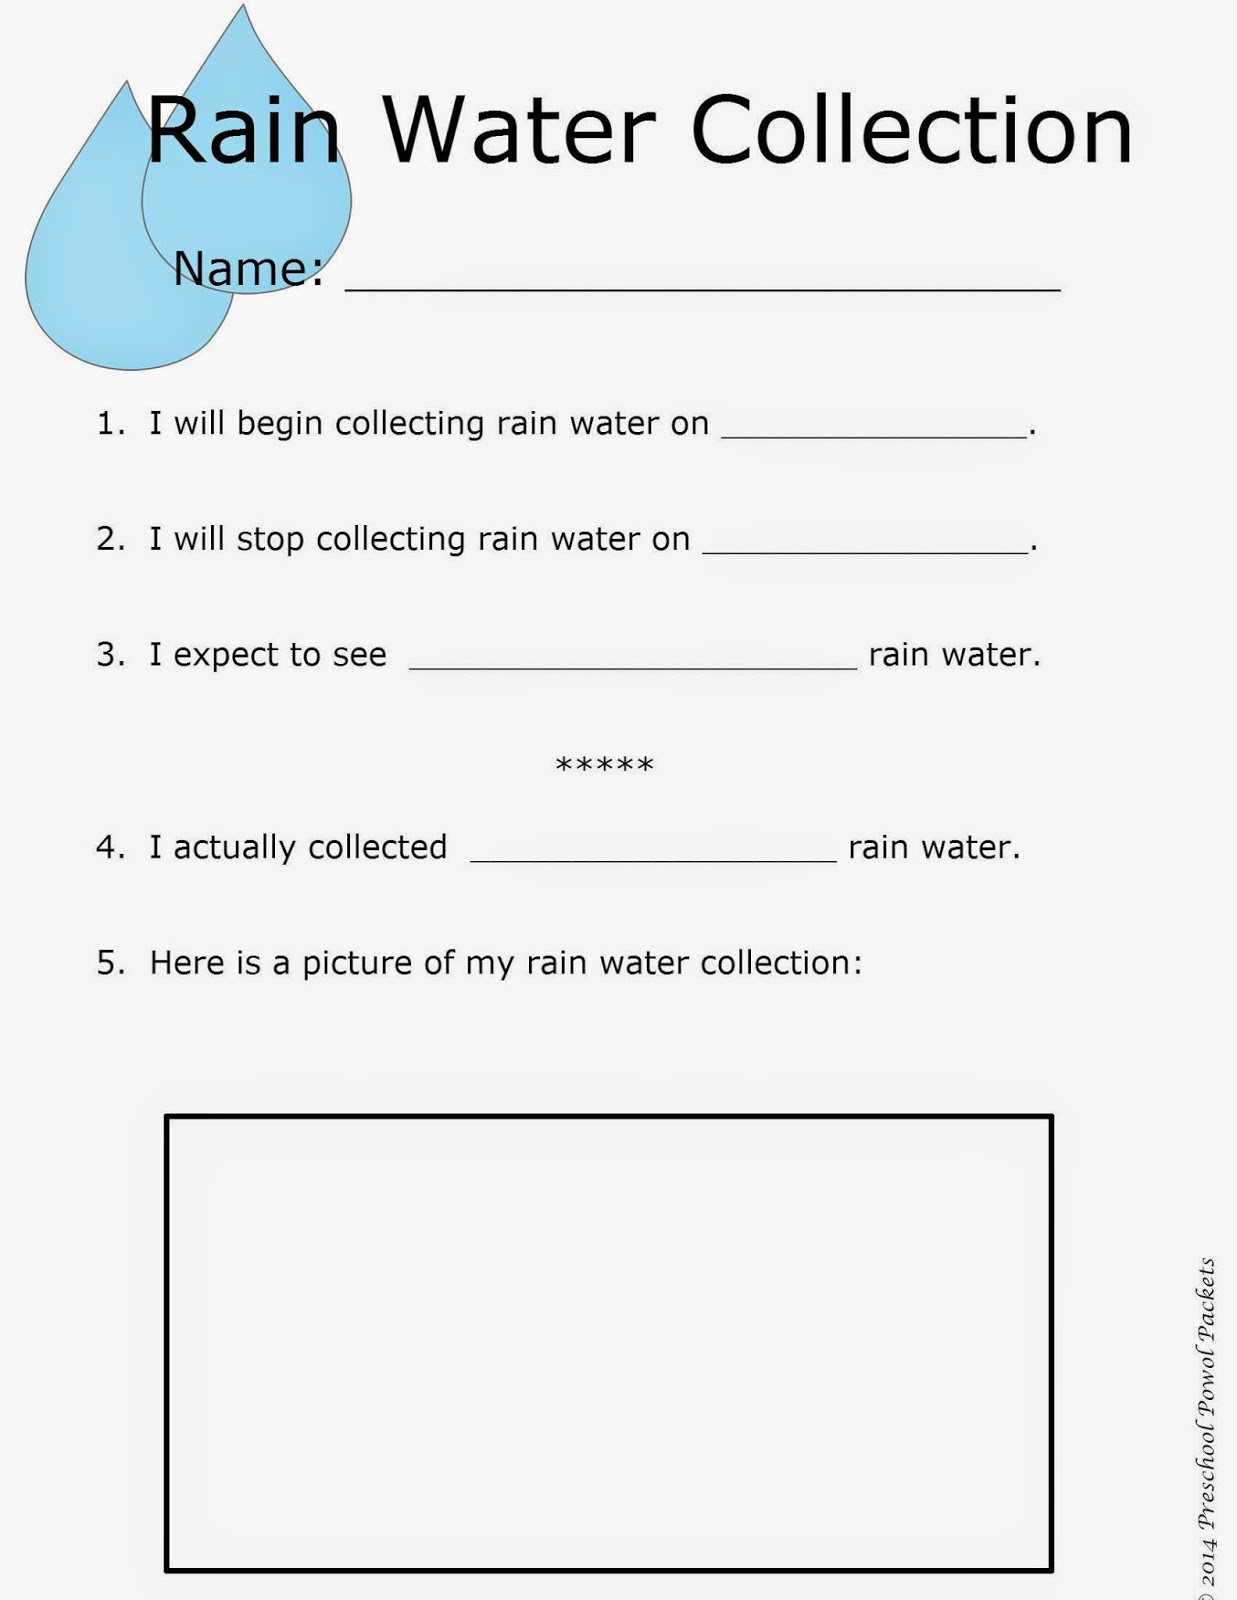 Rain Water Collection Preschool Earth Day Science Experiment